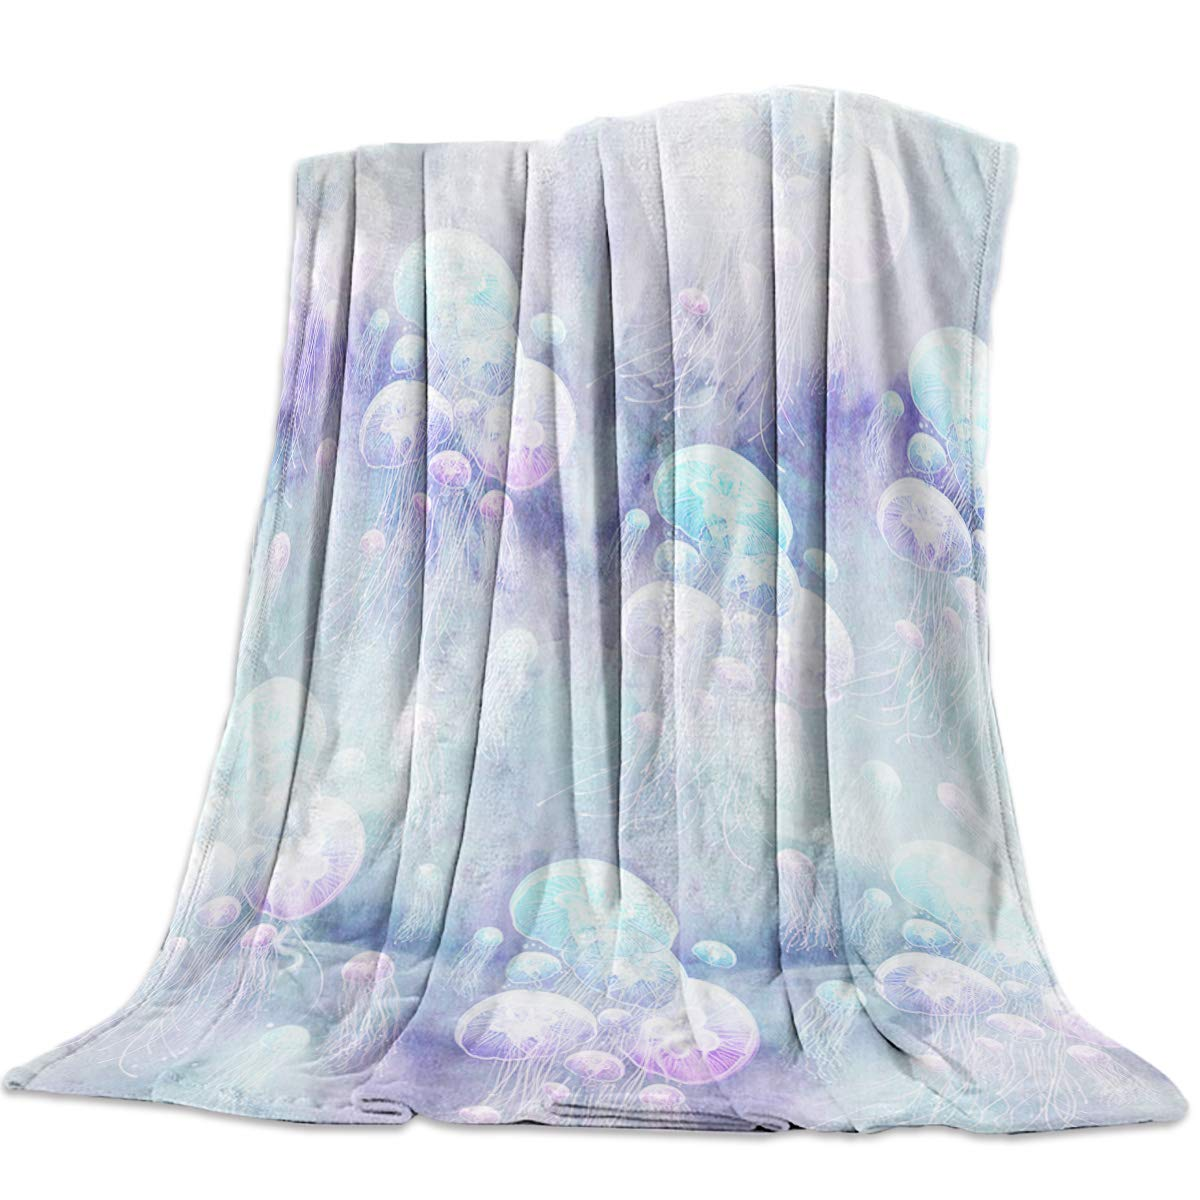 Jellyfish14yag0533 49x59inch=125x150cm YEHO Art Gallery 39x49 Inch Flannel Fleece Bed Blanket Soft Throw-Blankets for Girls Boys,The Traditional Old bluee Car Race of America,Cozy Lightweight Blankets for Bedroom Living Room Sofa Couch